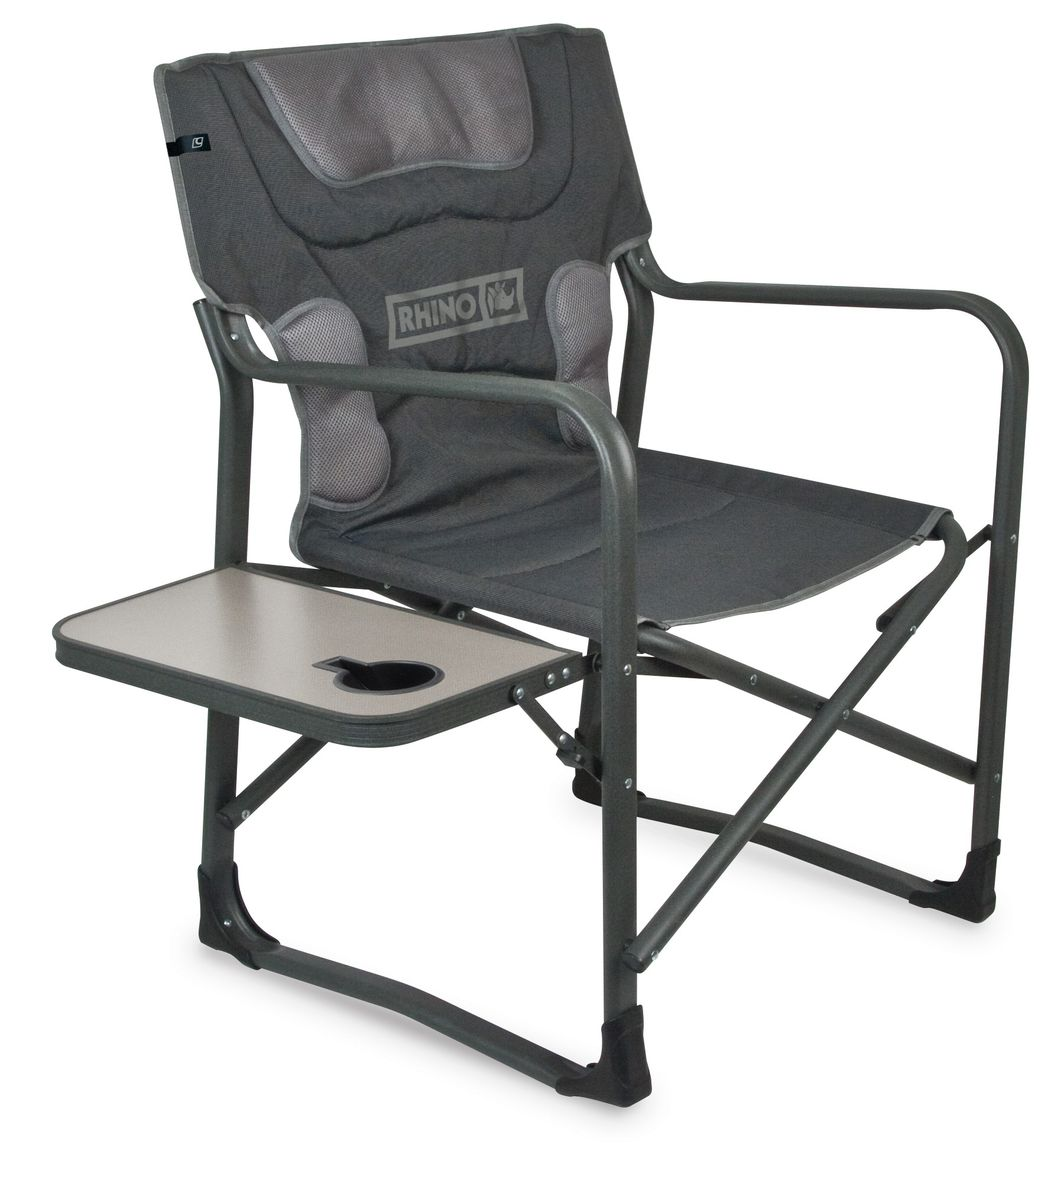 chair covers pretoria mesh office with lumbar support rhino directors black buy online in south africa